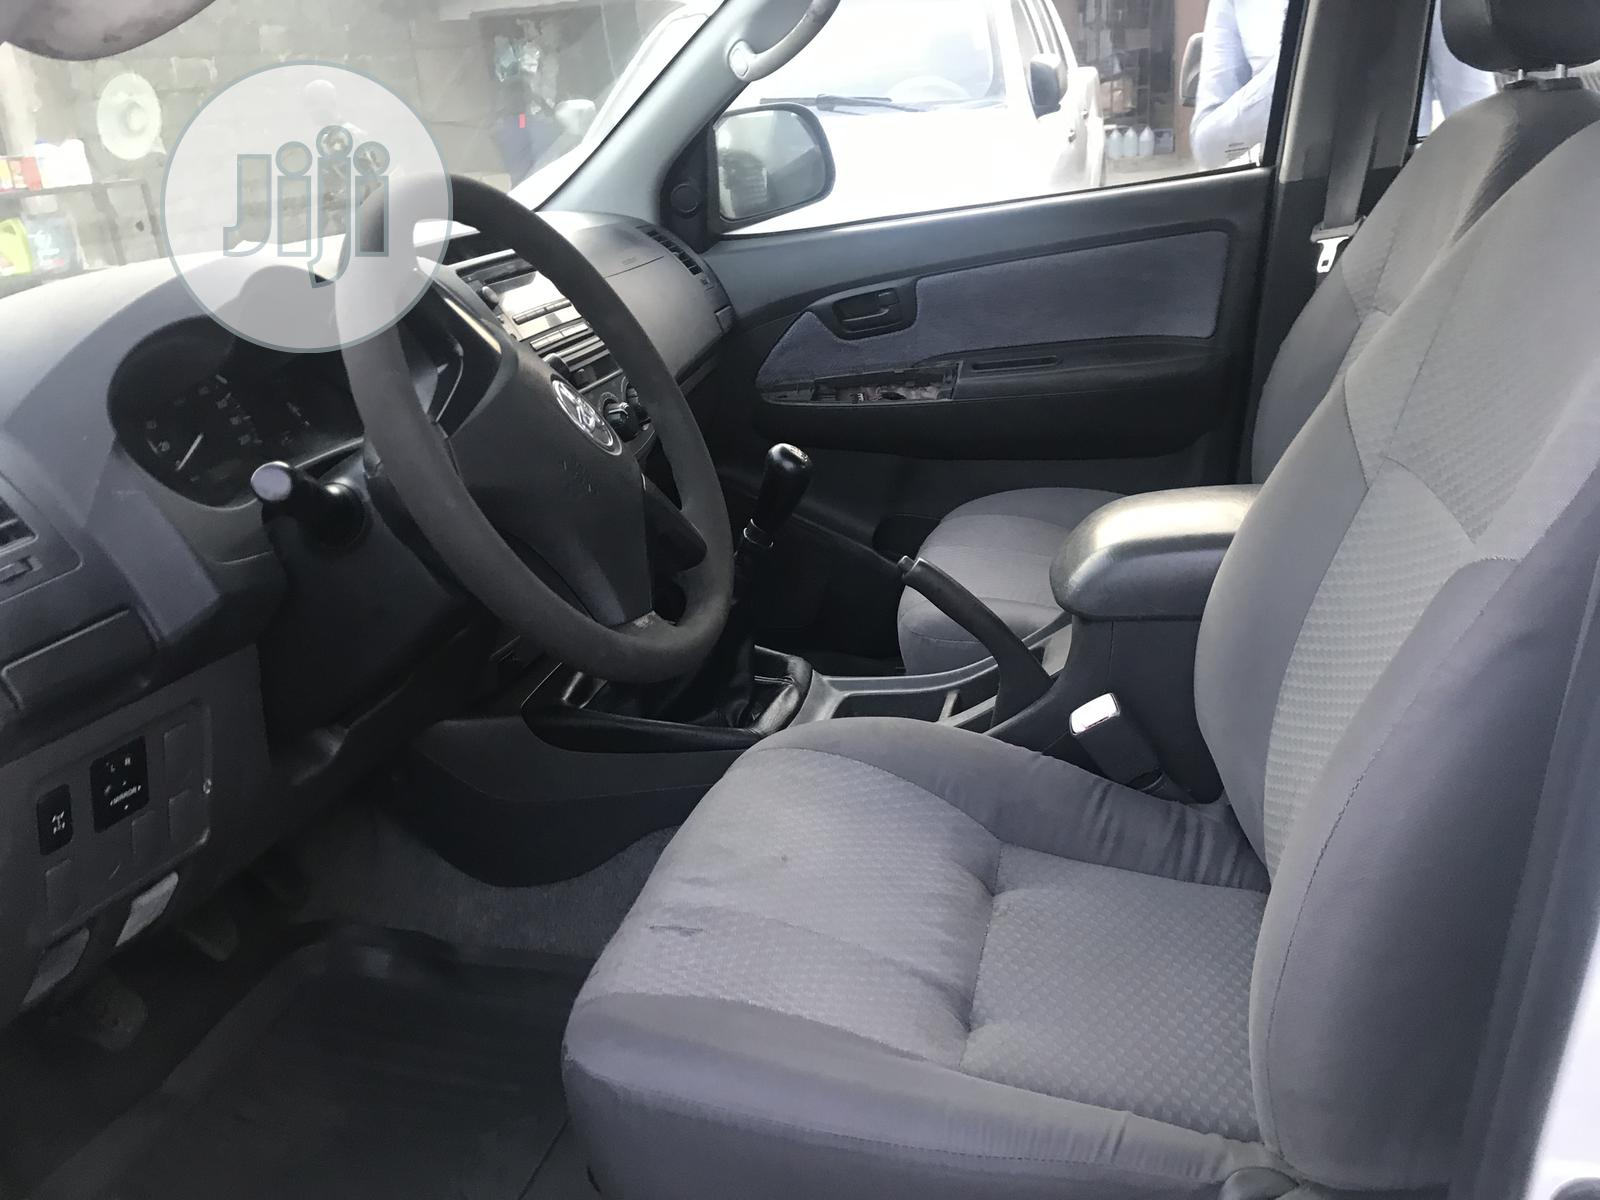 Toyota Hilux 2012 2.0 VVT-i White | Cars for sale in Ikeja, Lagos State, Nigeria